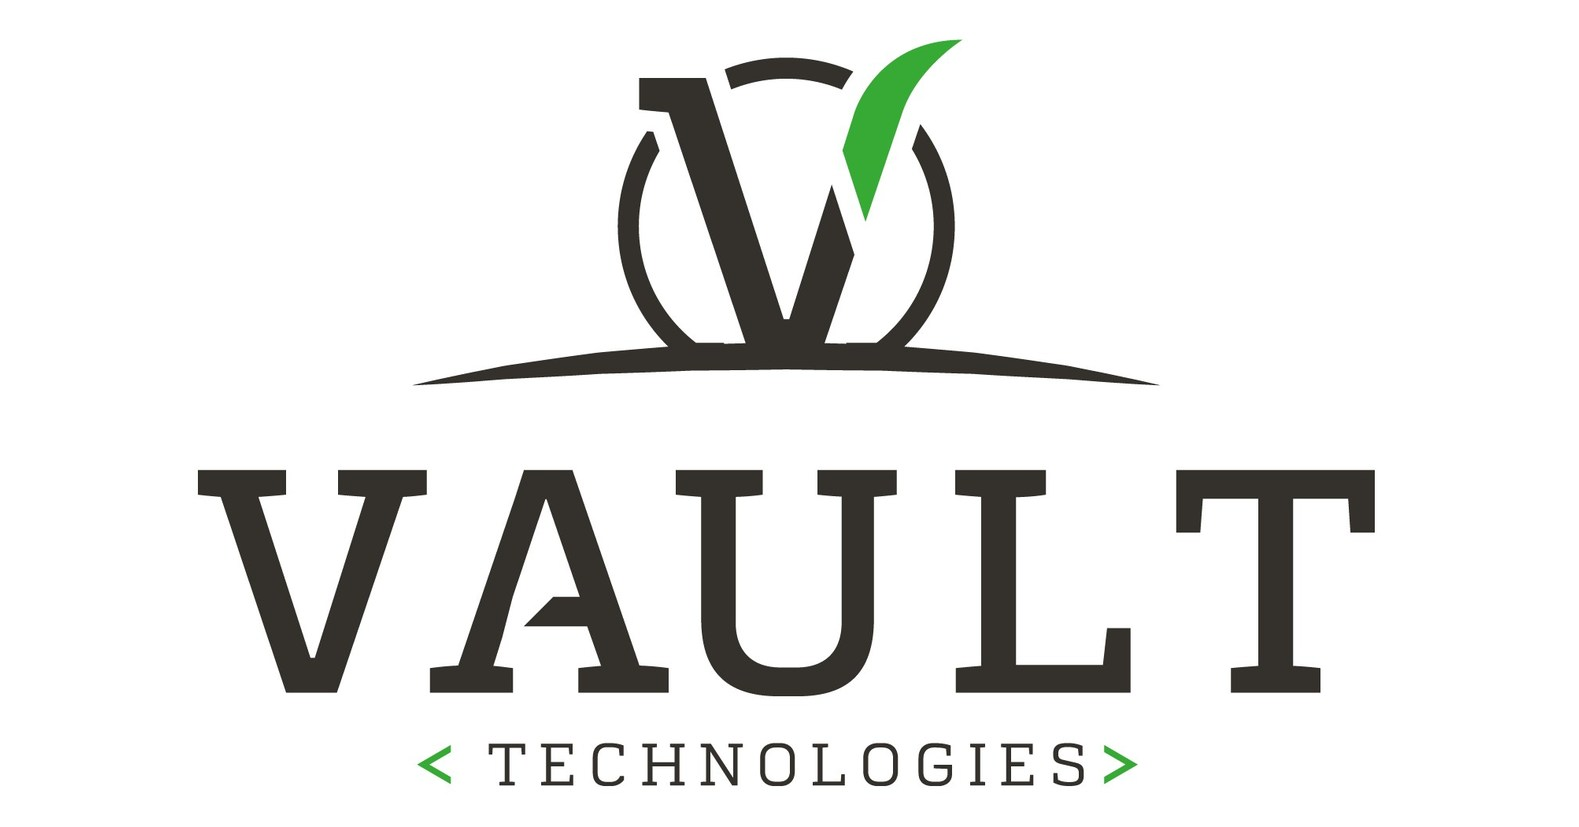 Valley Agricultural Software (VAS) and Vault Dairy